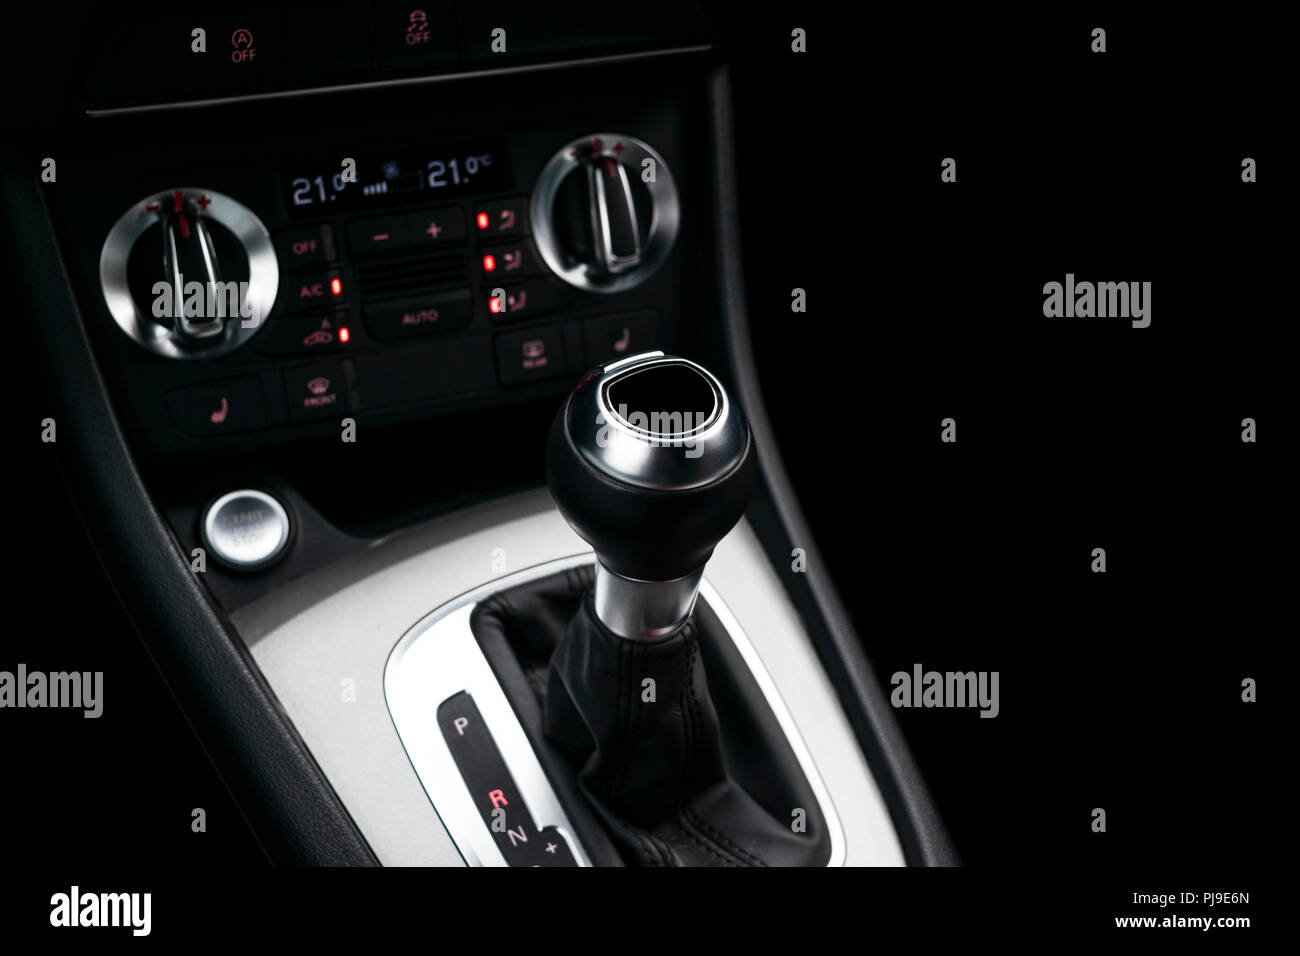 Automatic Gear Stock Photos & Automatic Gear Stock Images - Alamy